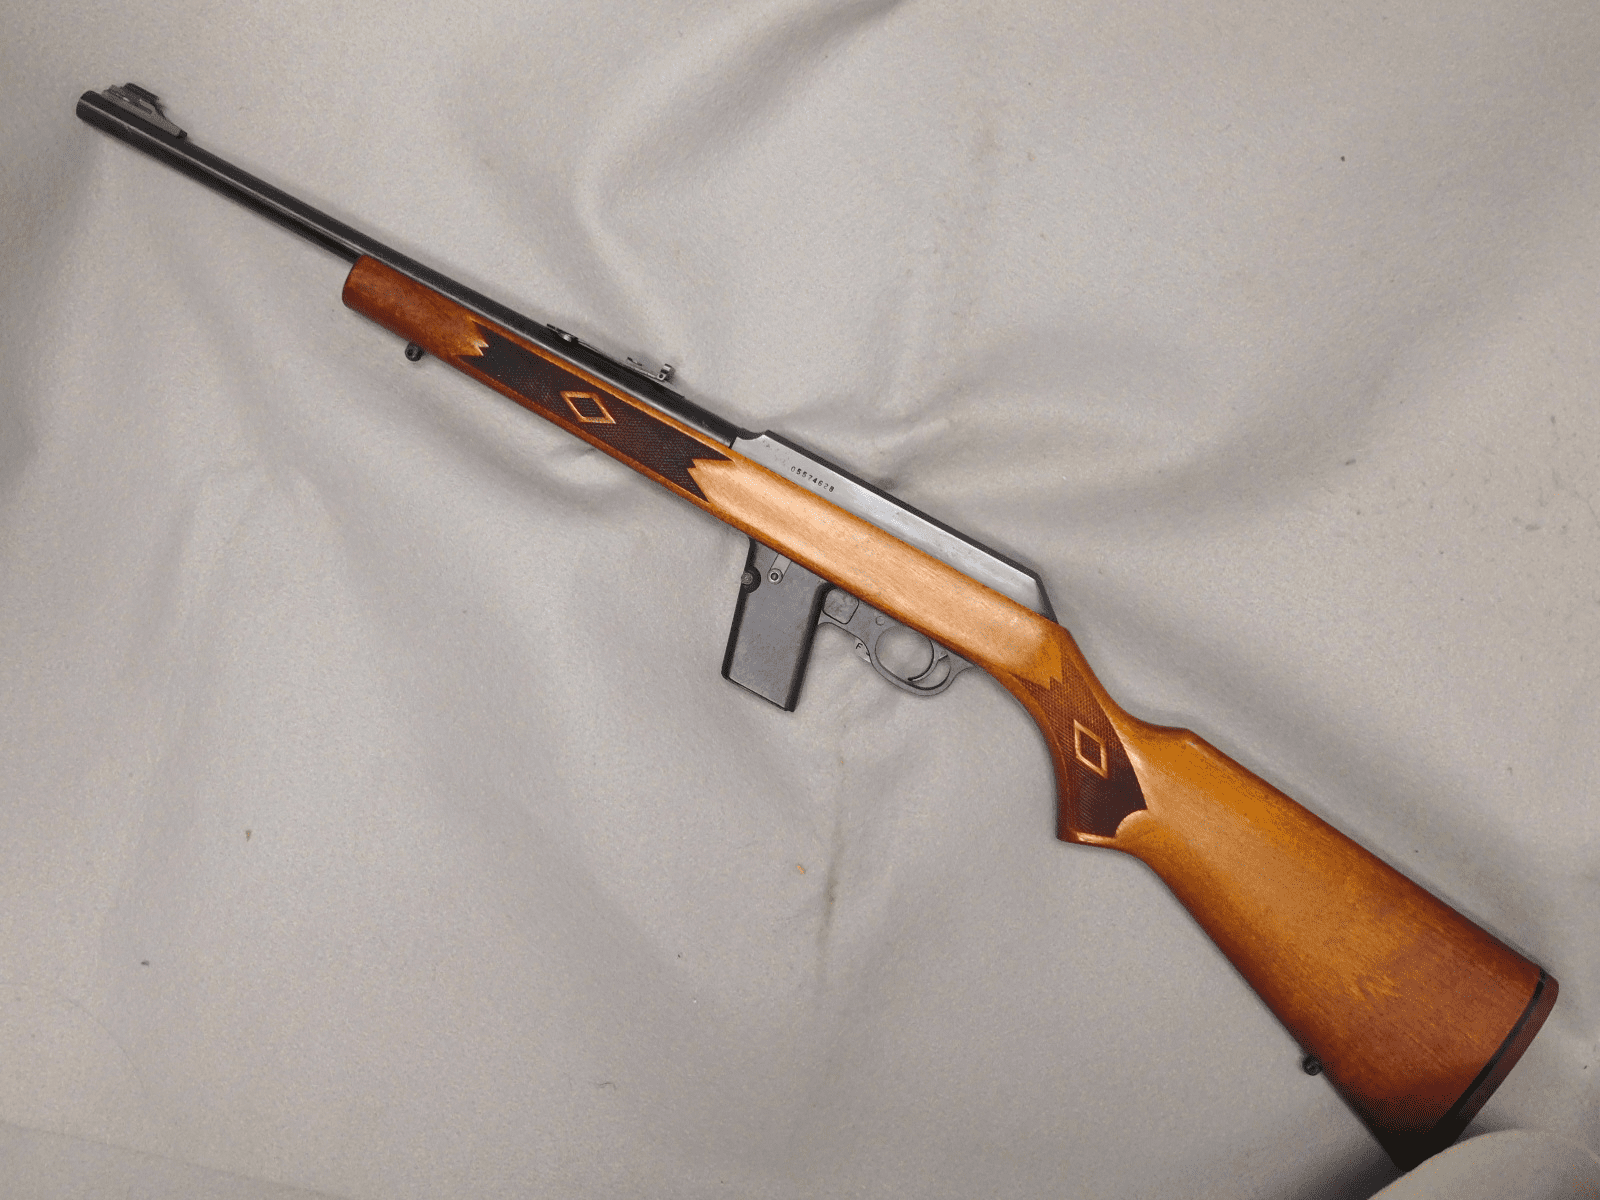 Marlin model 9 (9mm)